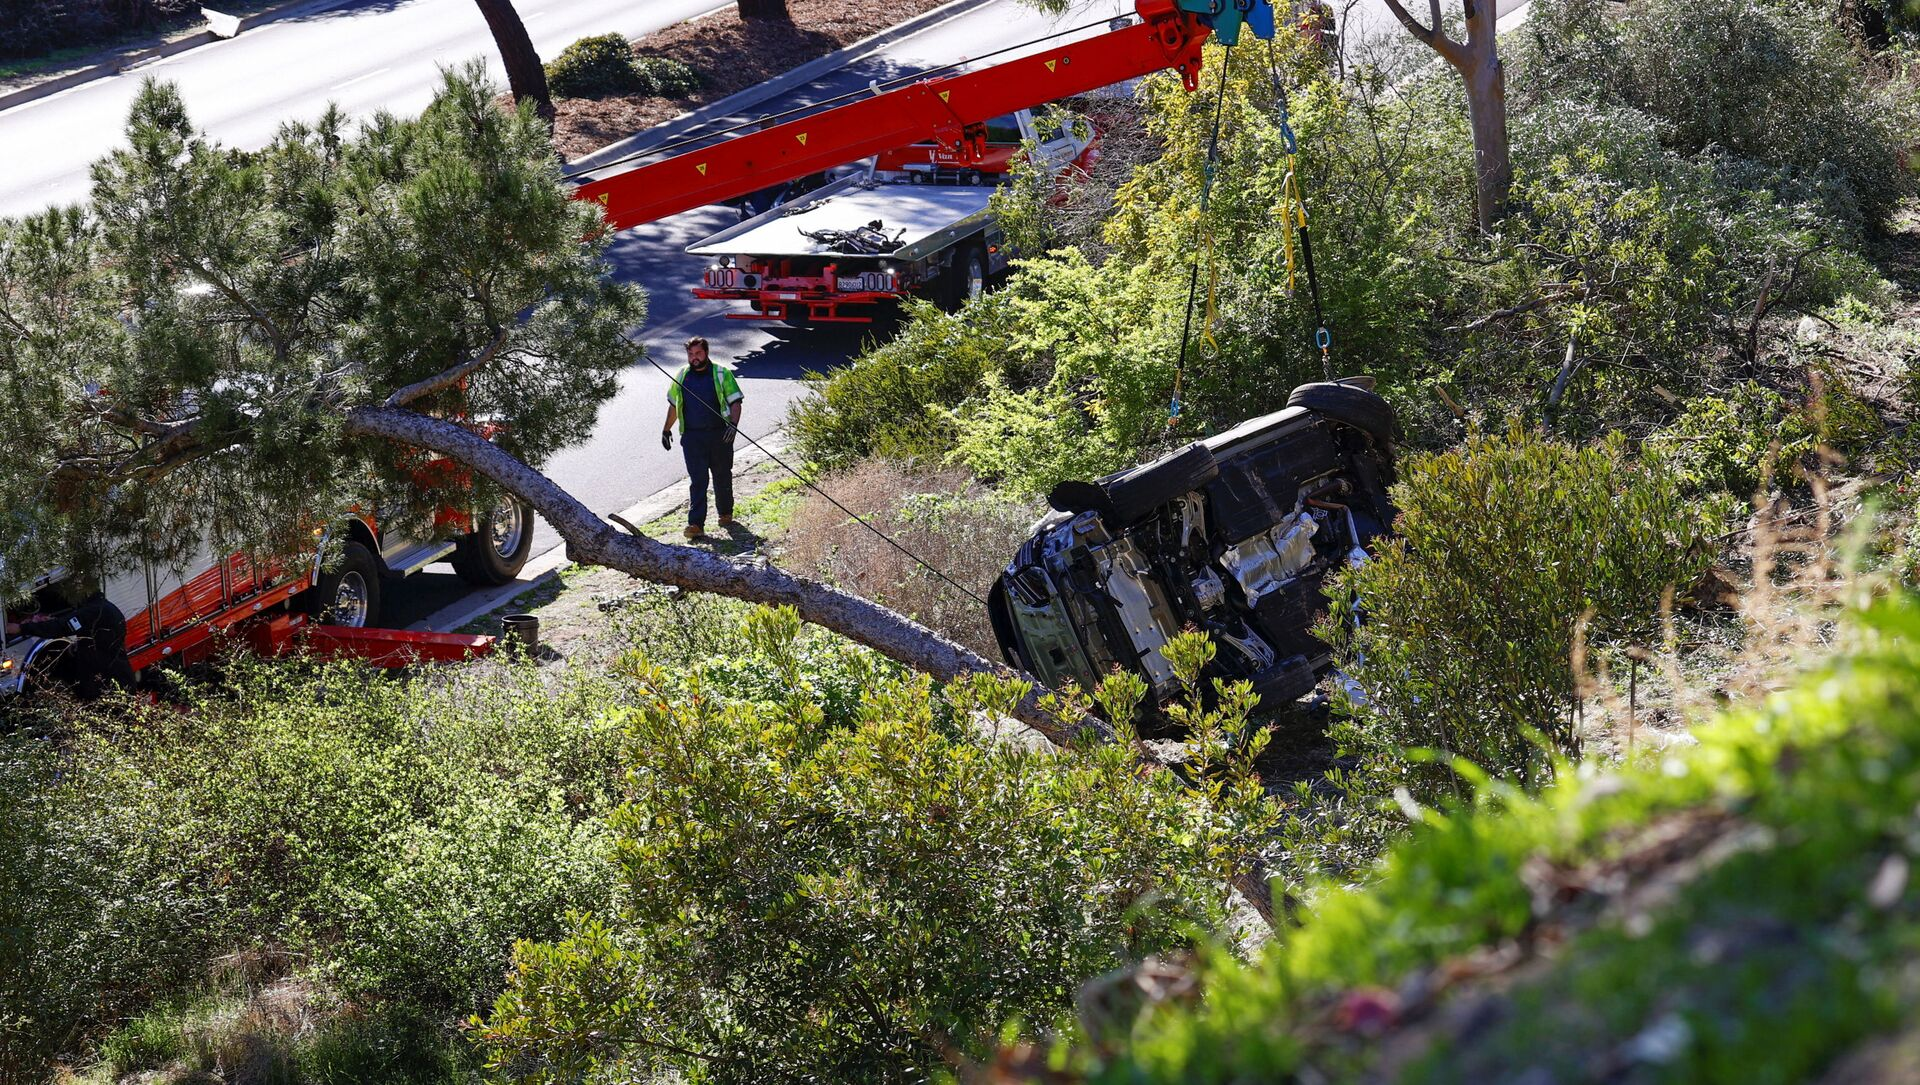 The overturned car of Tiger Woods is seen after he was involved in a car crash, near Los Angeles, California, U.S., February 23, 2021. REUTERS/Mario Anzuoni - Sputnik International, 1920, 24.02.2021